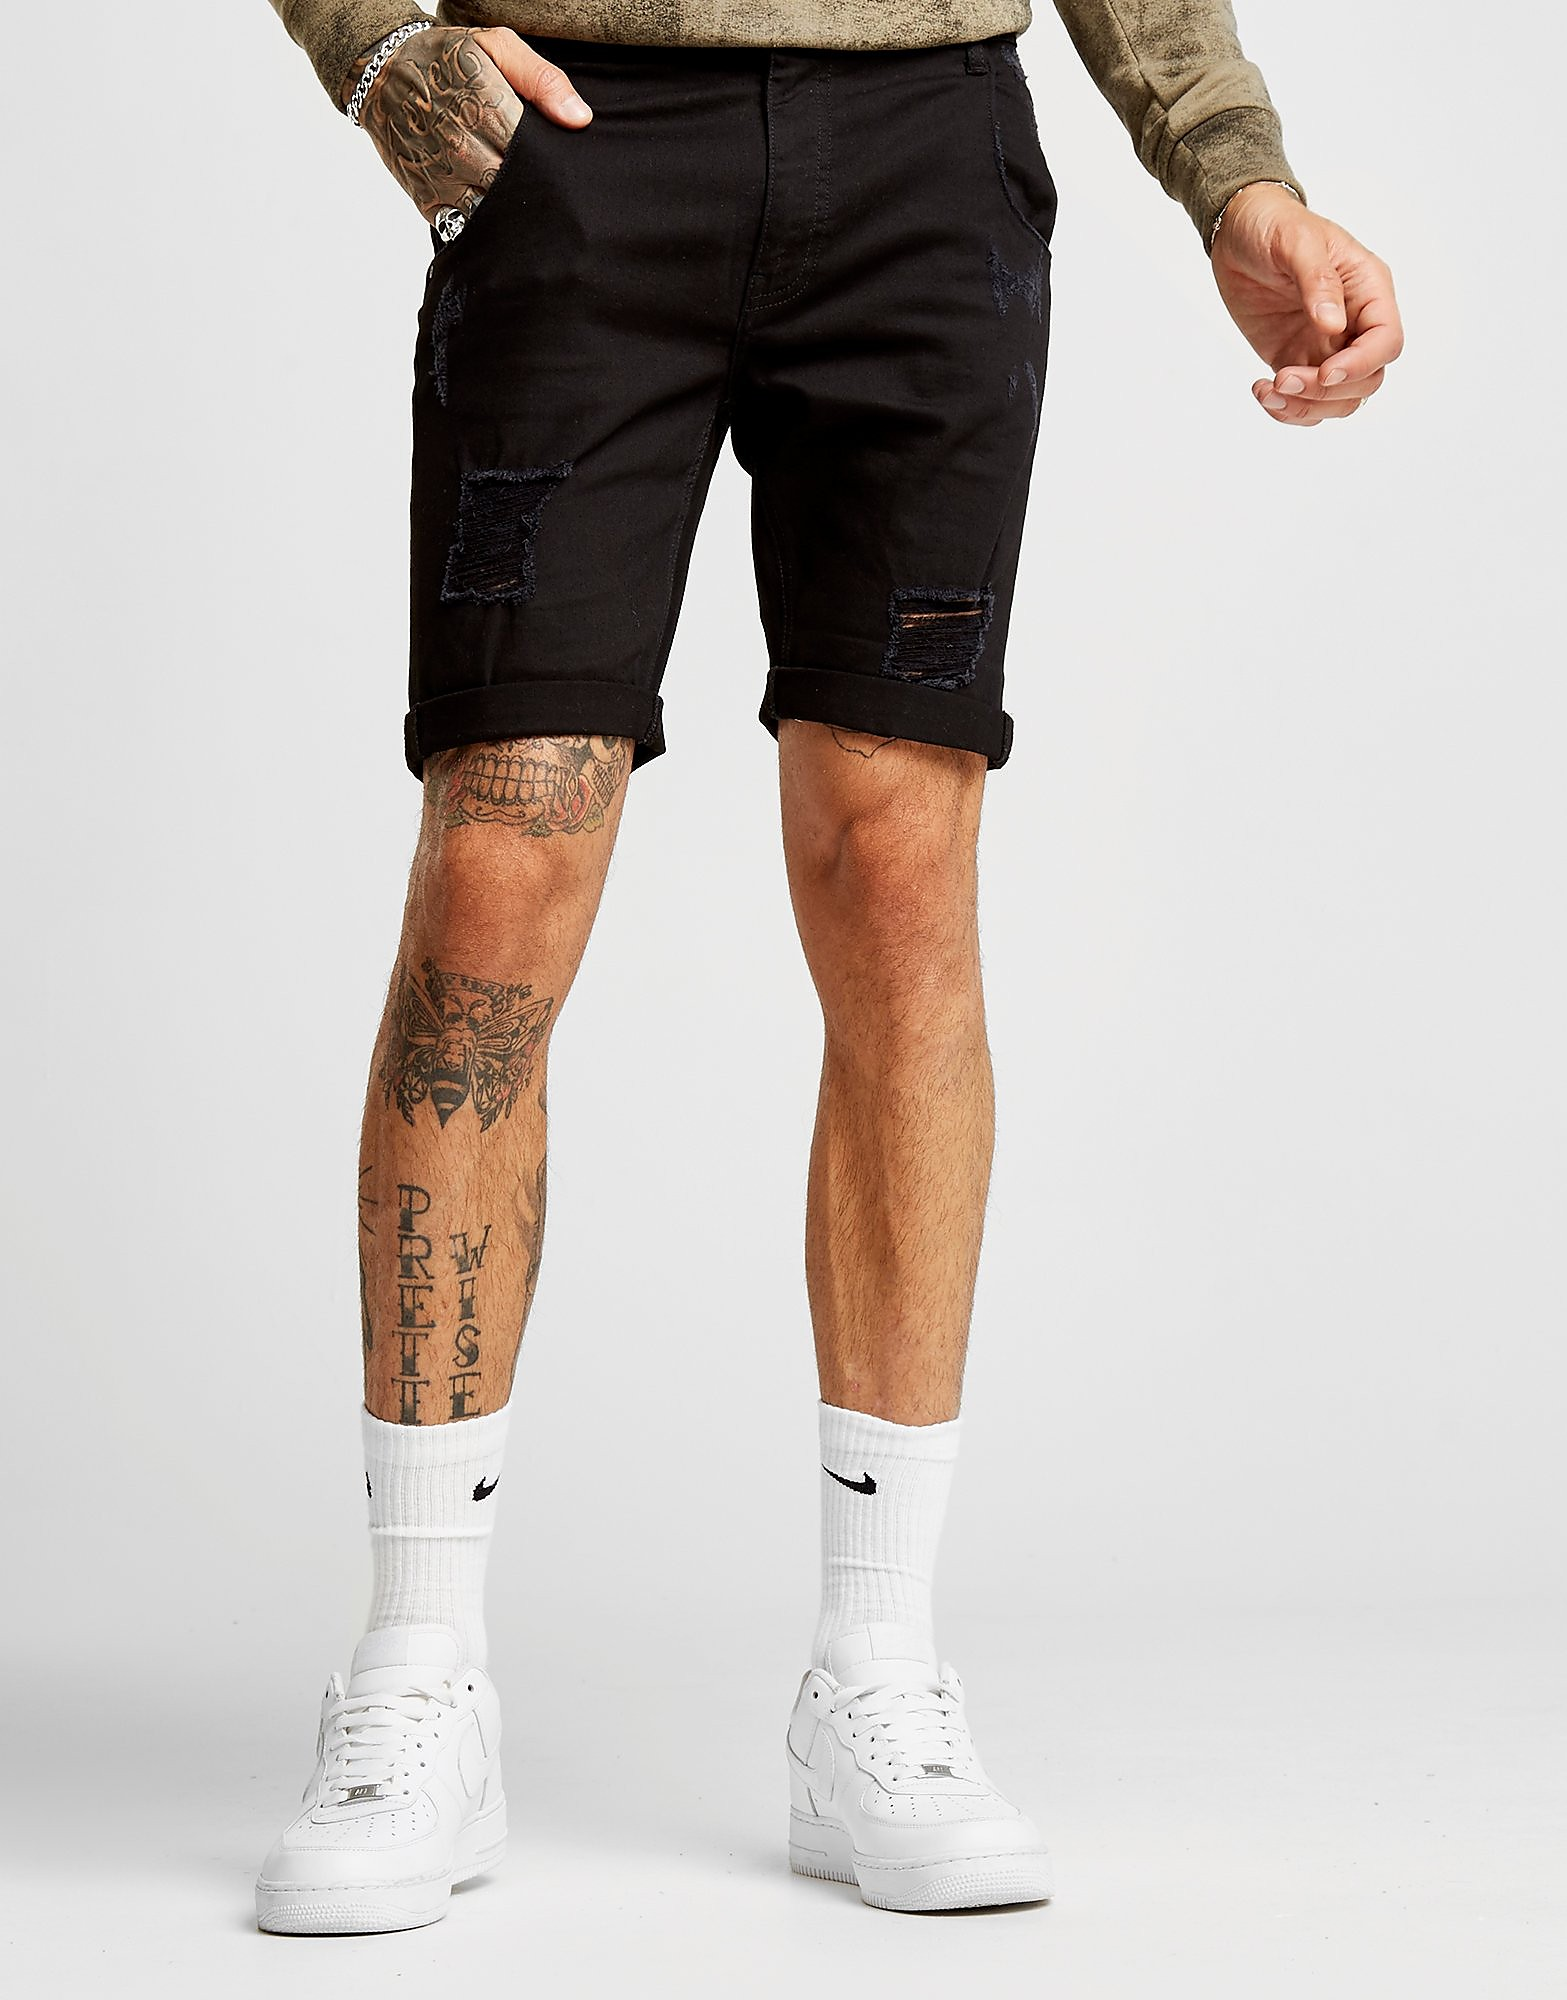 Supply & Demand Benji Denim Shorts